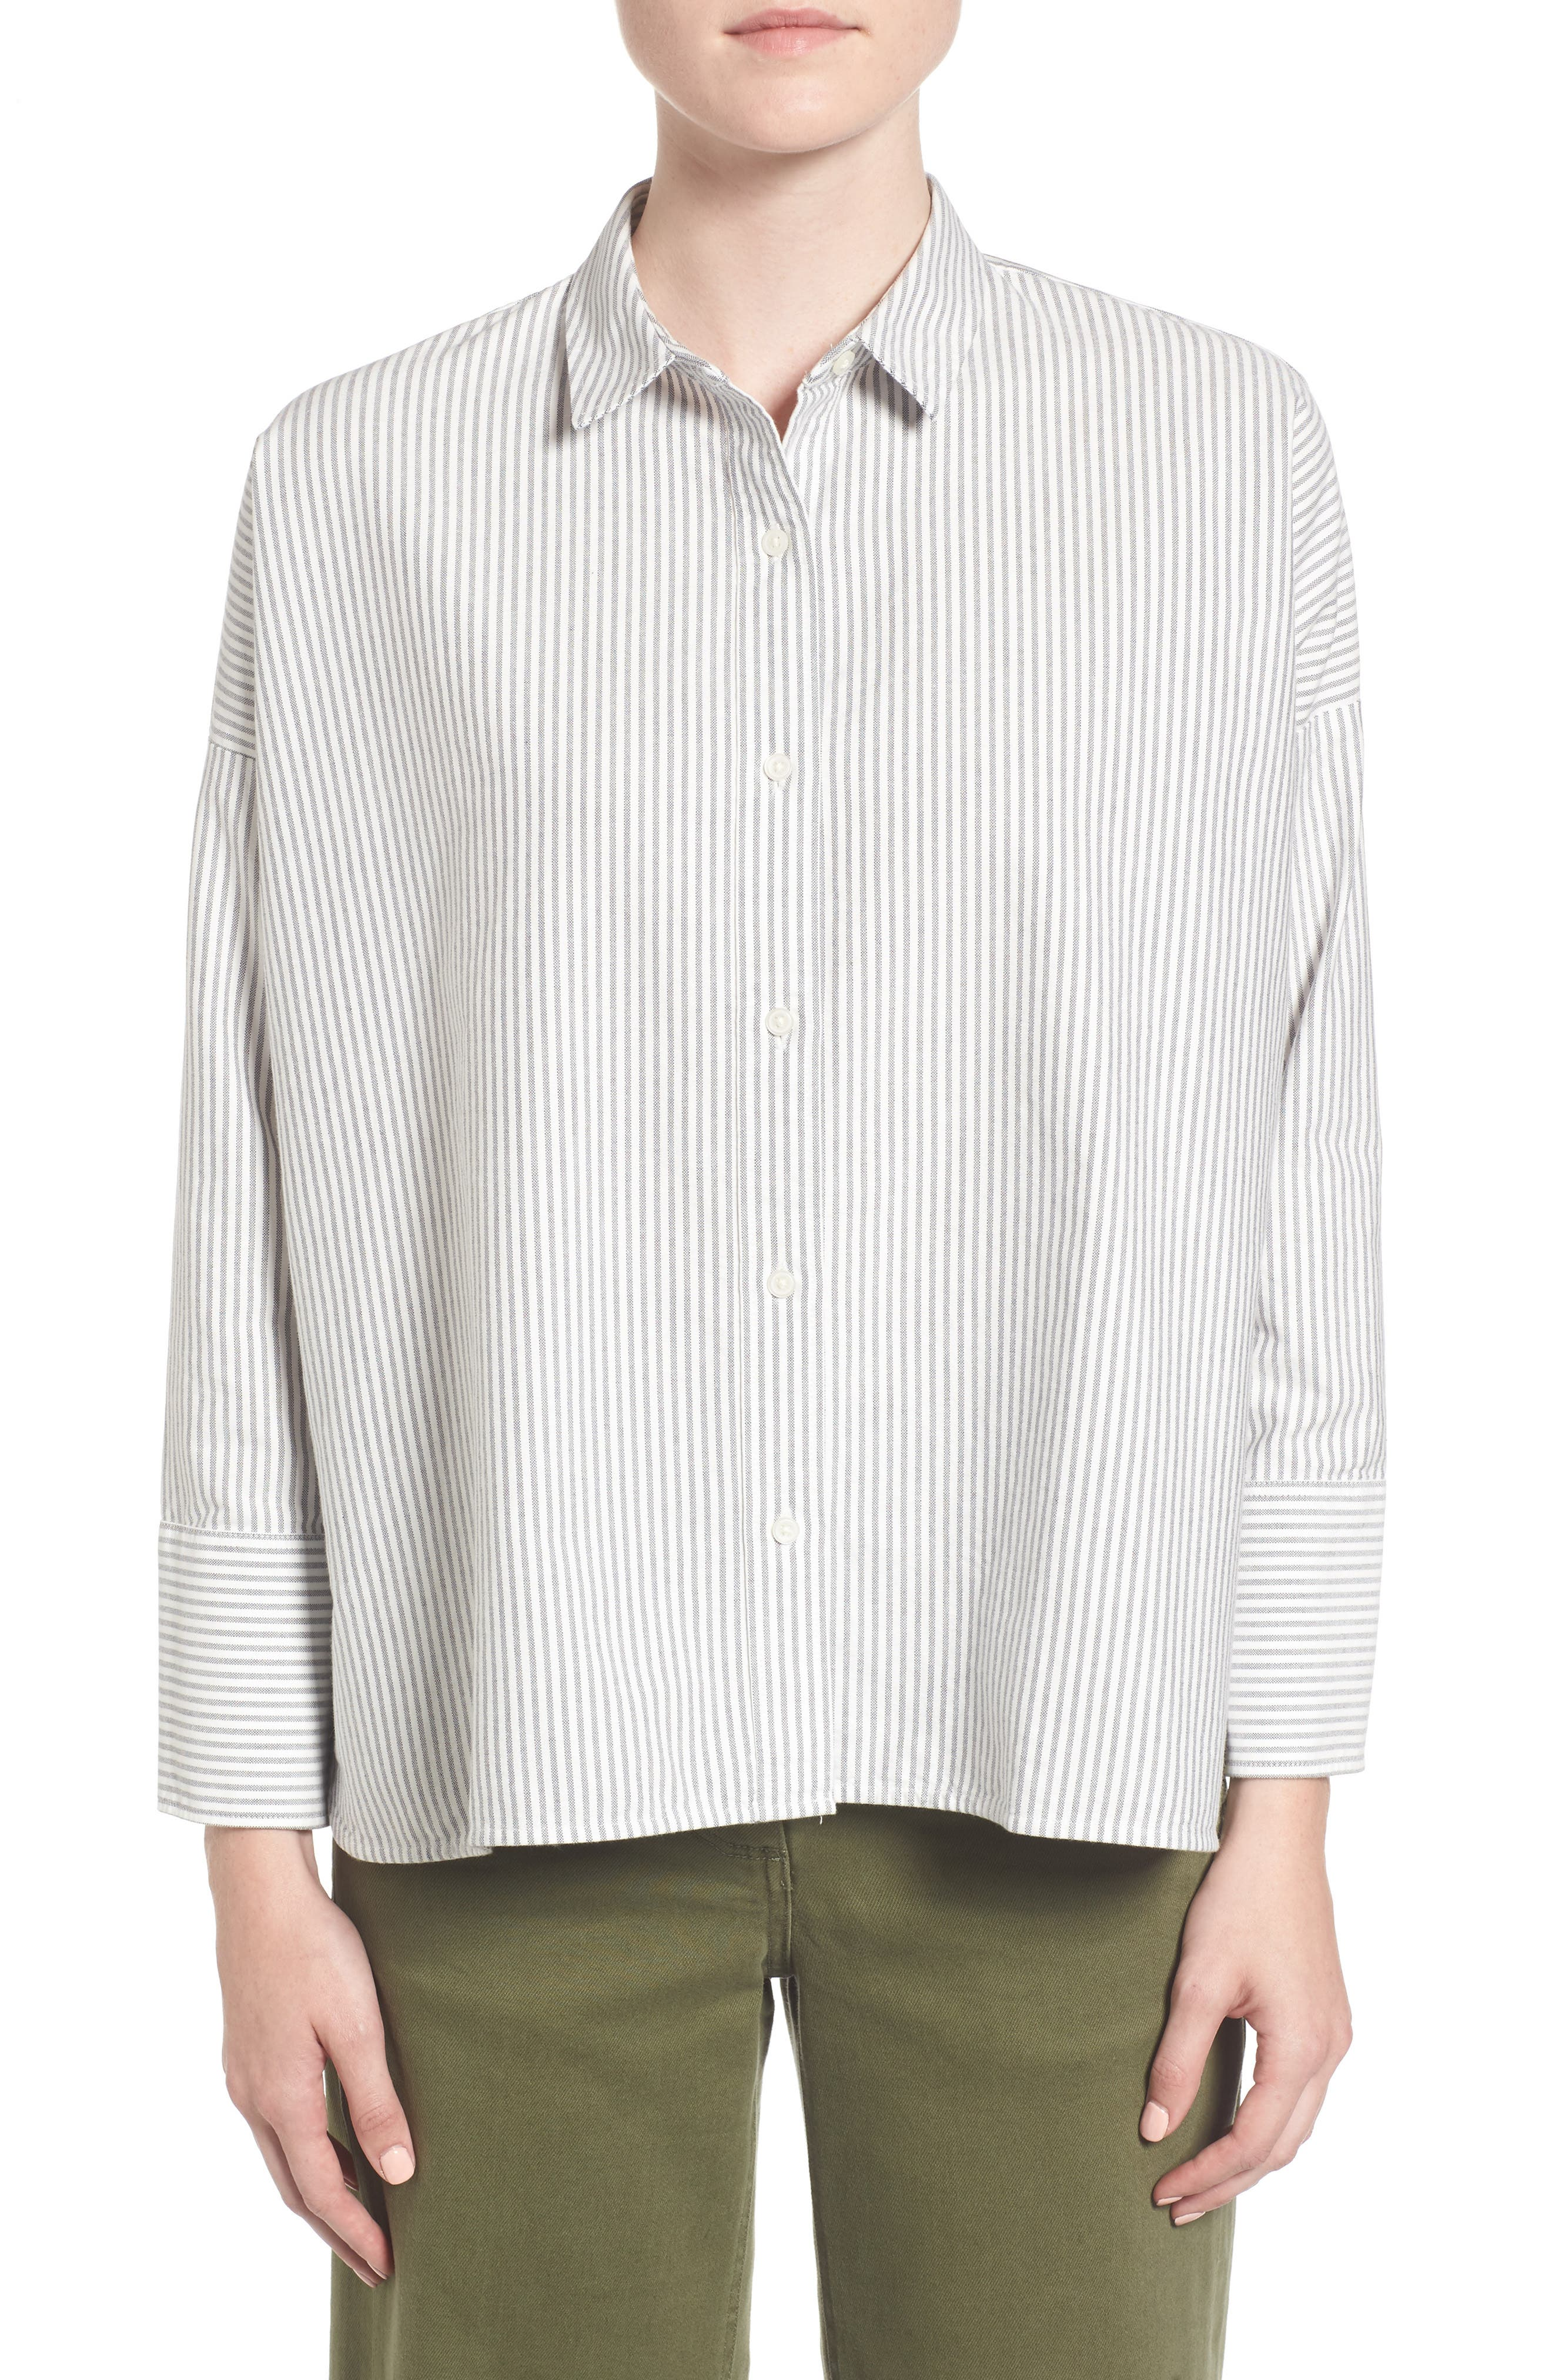 Alternate Image 1 Selected - Everlane The Japanese Oxford Square Shirt